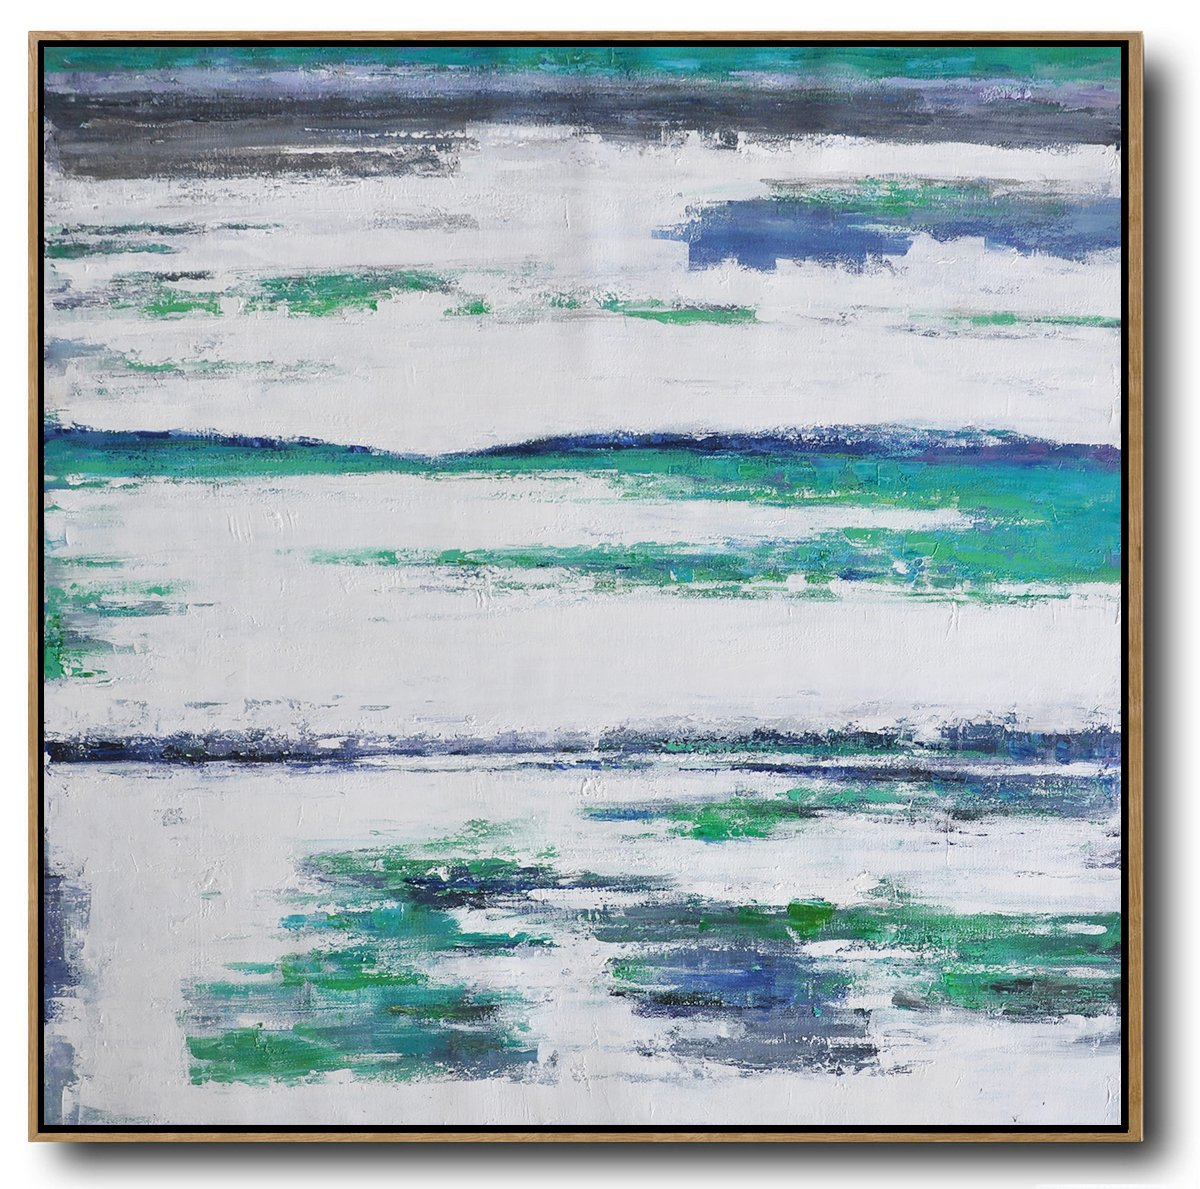 Original Painting Hand Made Large Abstract Art,Large Abstract Landscape Oil Painting On Canvas,Canvas Artwork For Sale,Green,White,Blue.etc